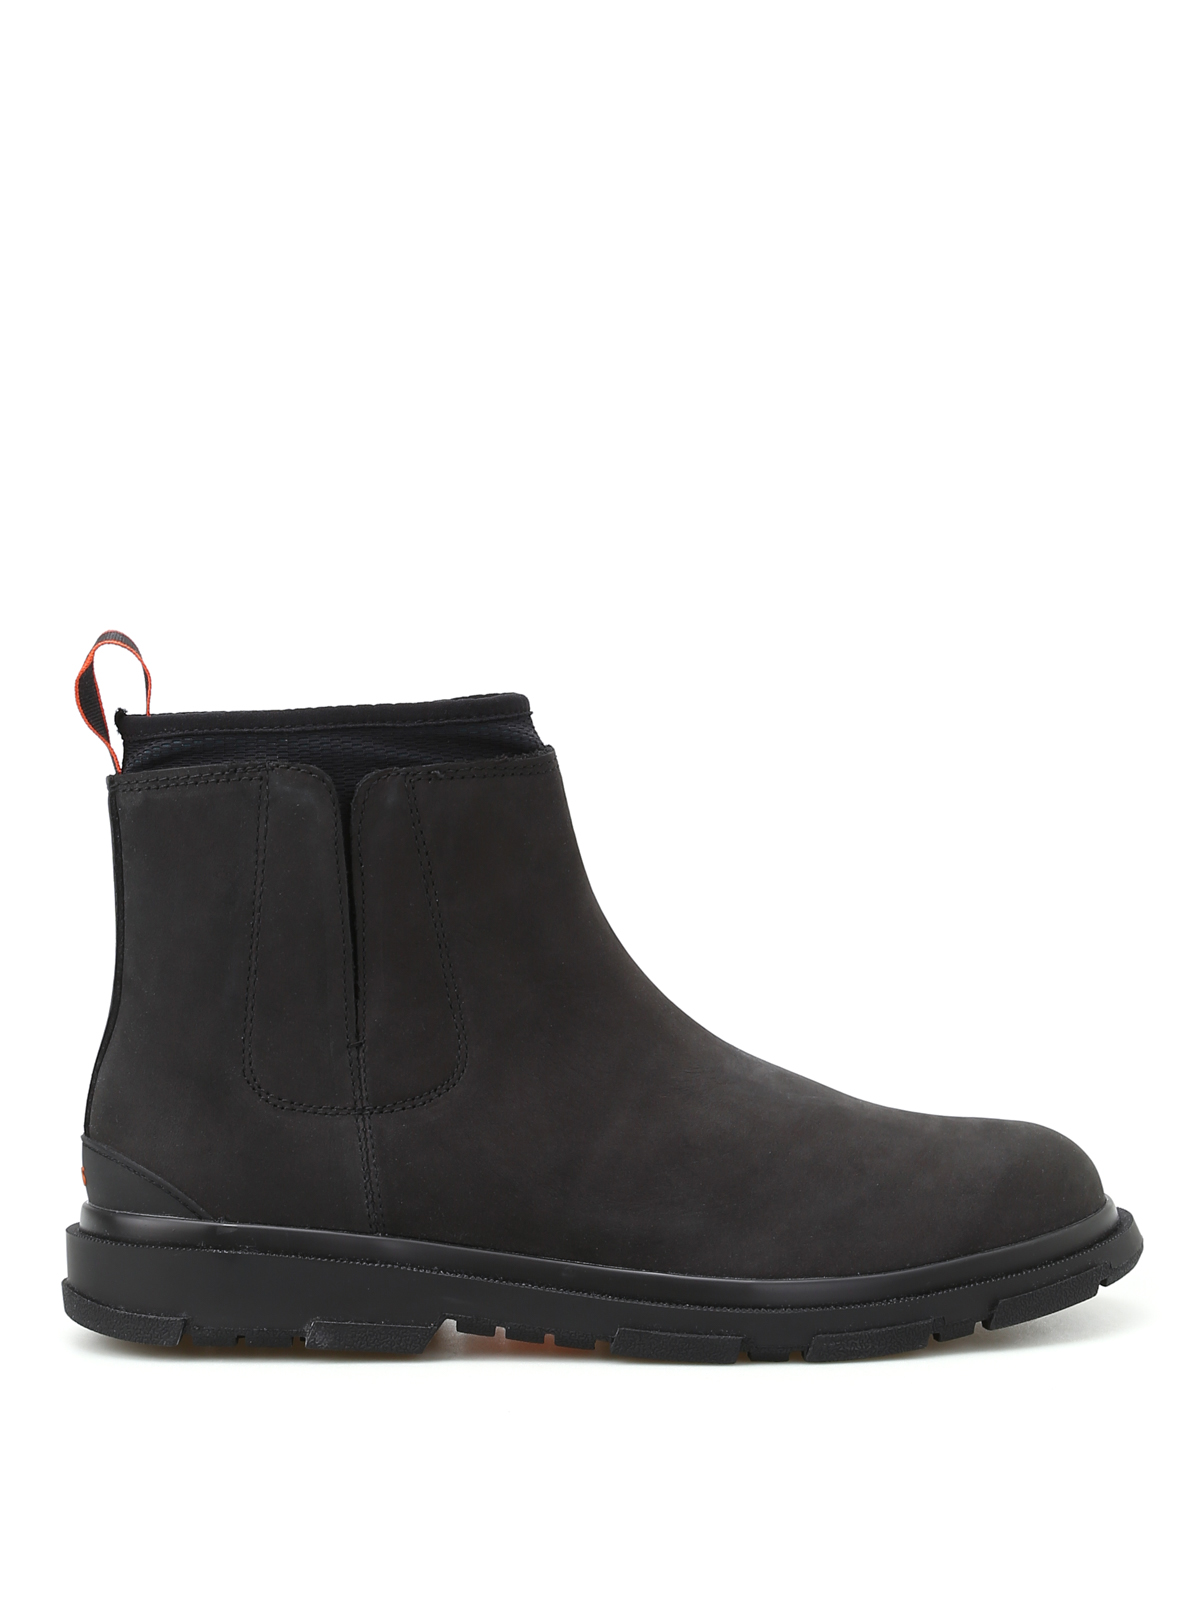 Swims Water Resistant Storm Chelsea Boots Ankle Boots